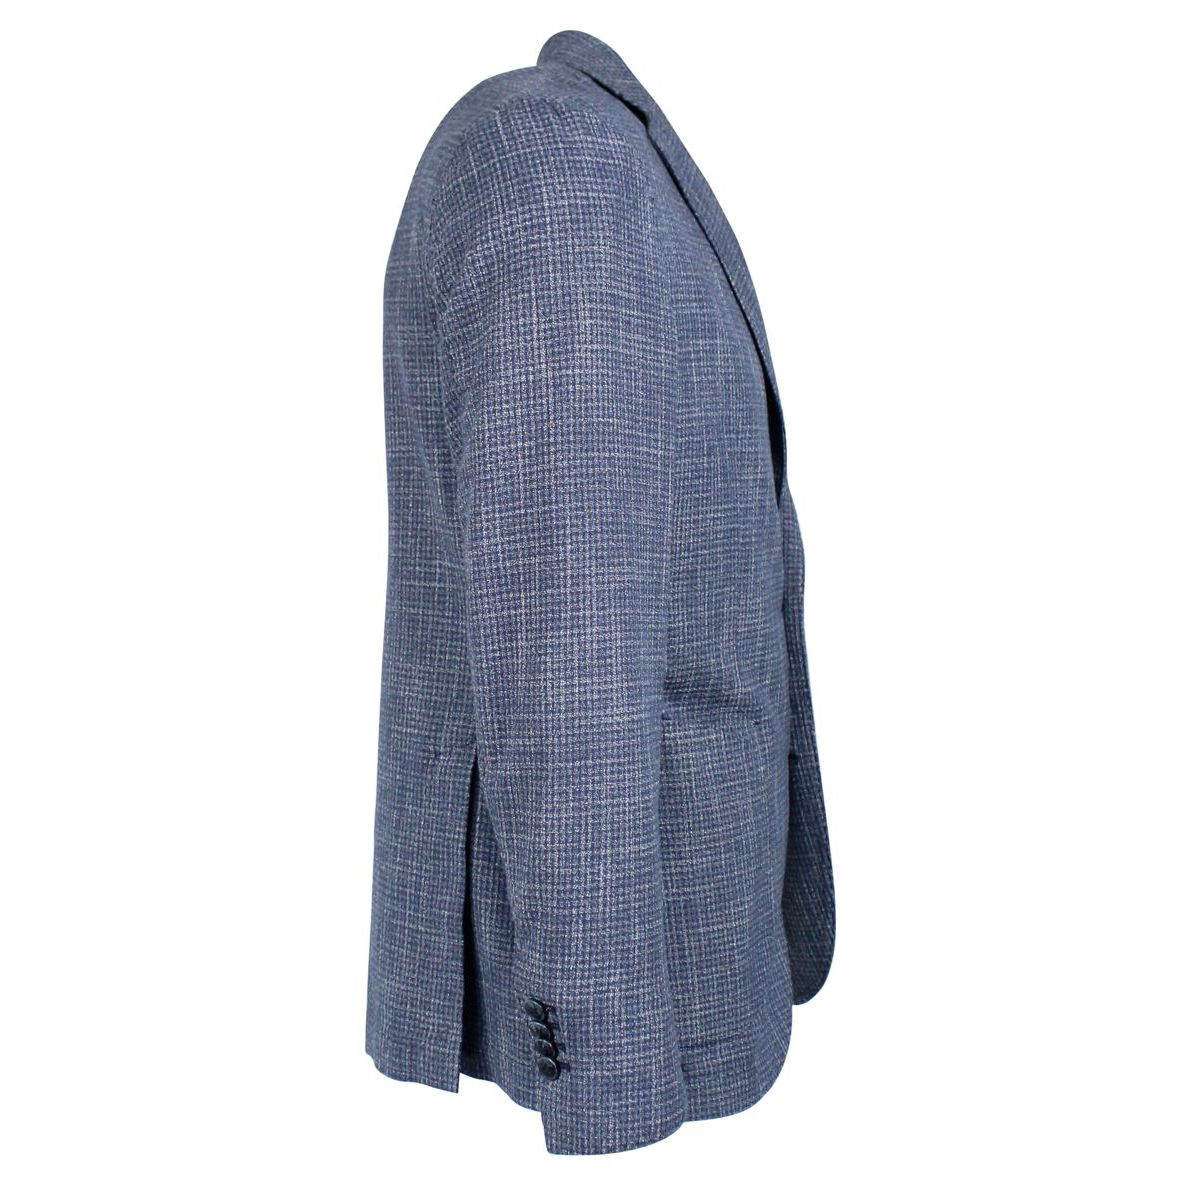 Linen blend jacket with two buttons Blue L.B.M. 1911